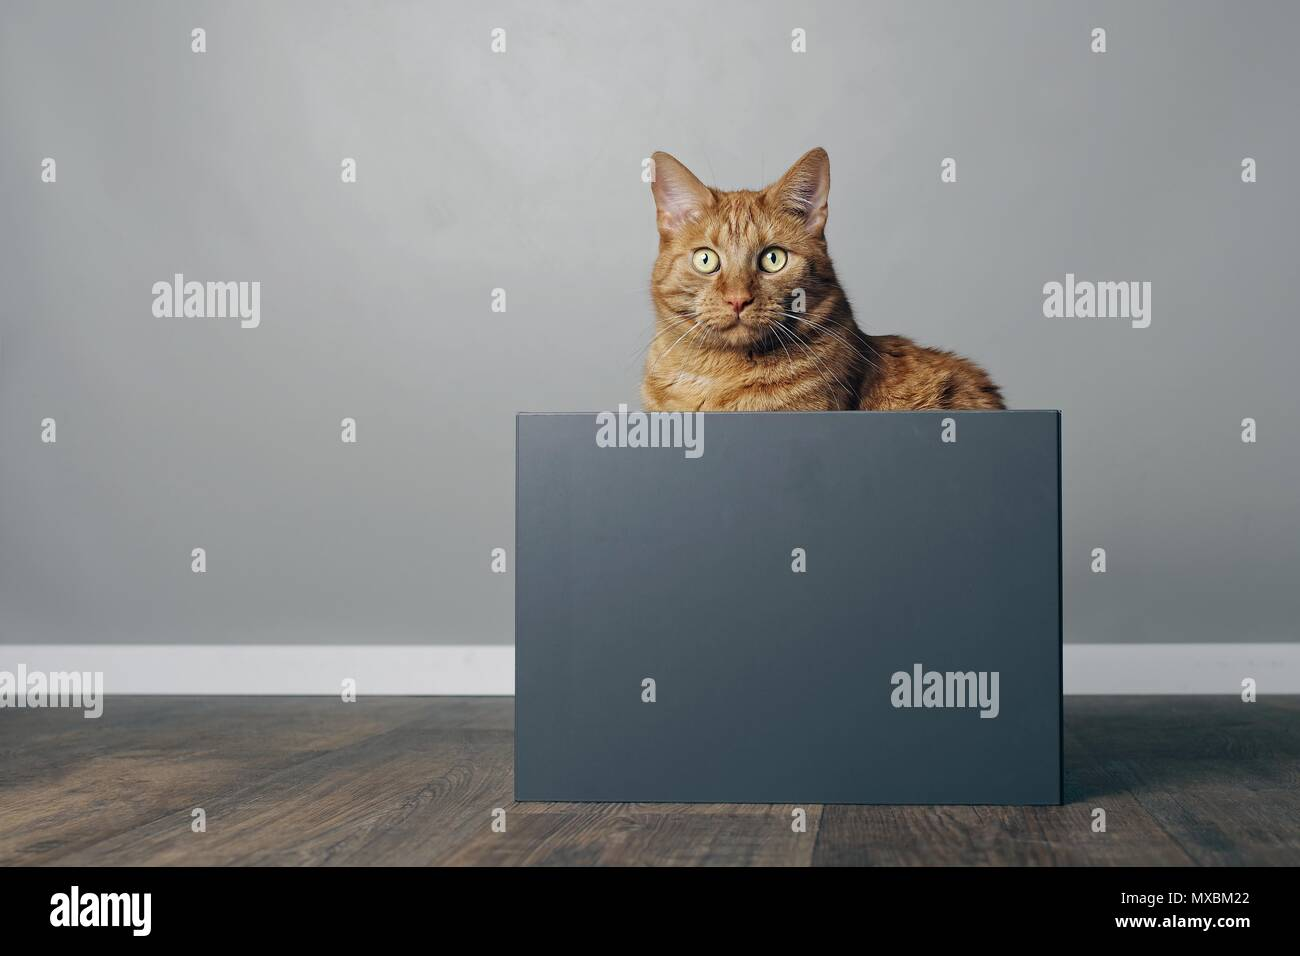 Cute ginger cat sitting in a grey box and looking curious to the camera. - Stock Image